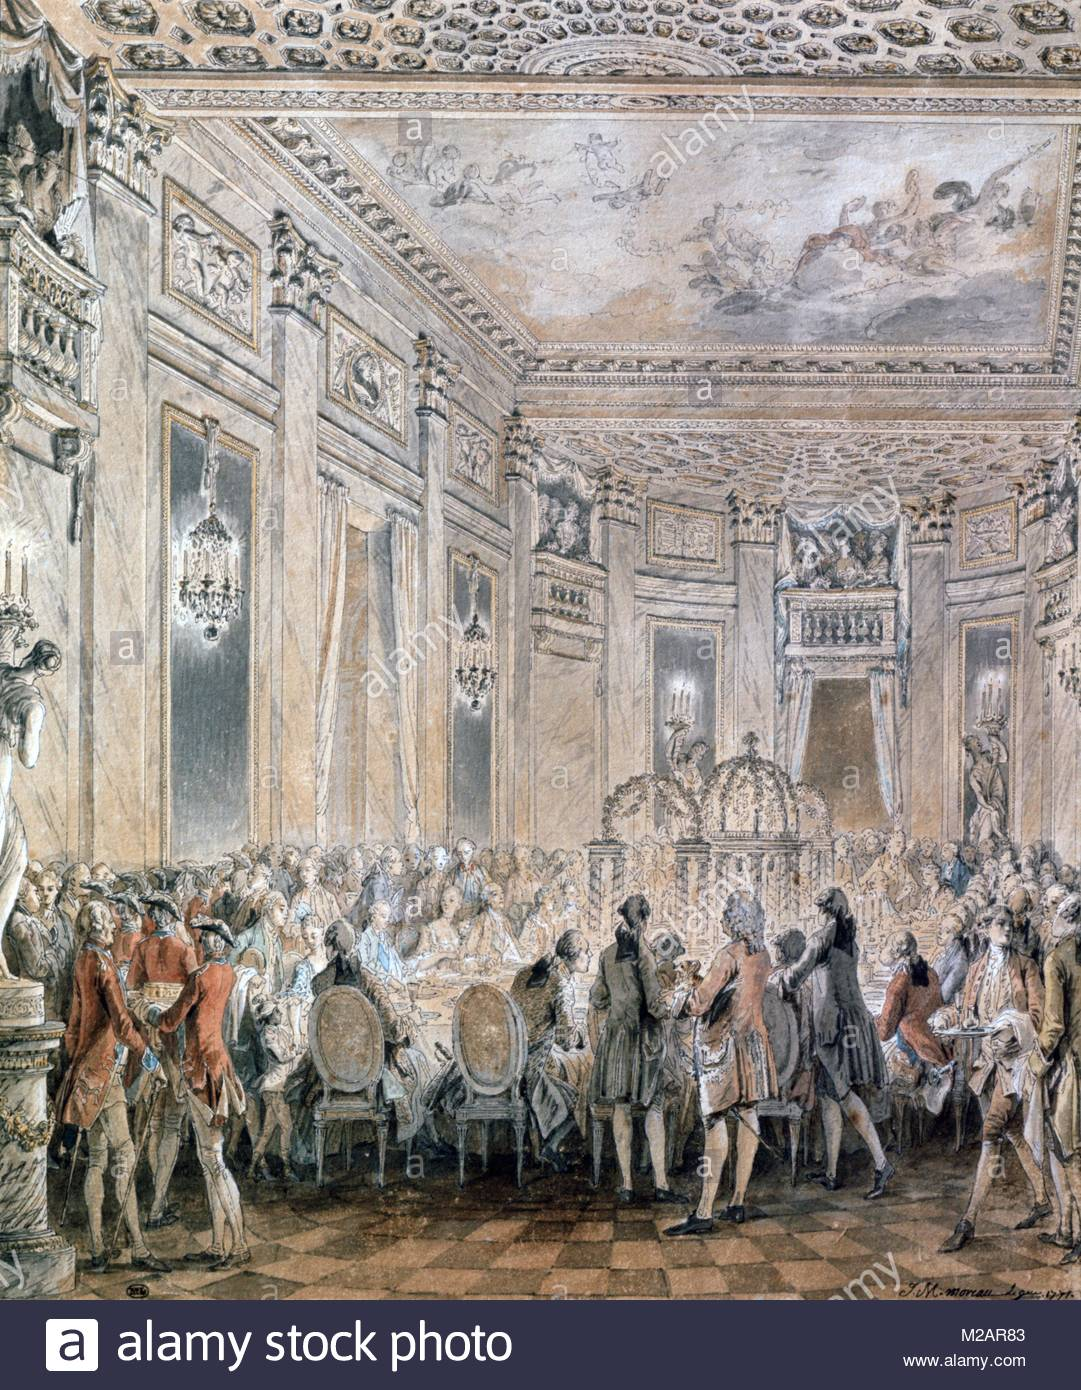 Fetes at Louveciennes, 1771 - Stock Image